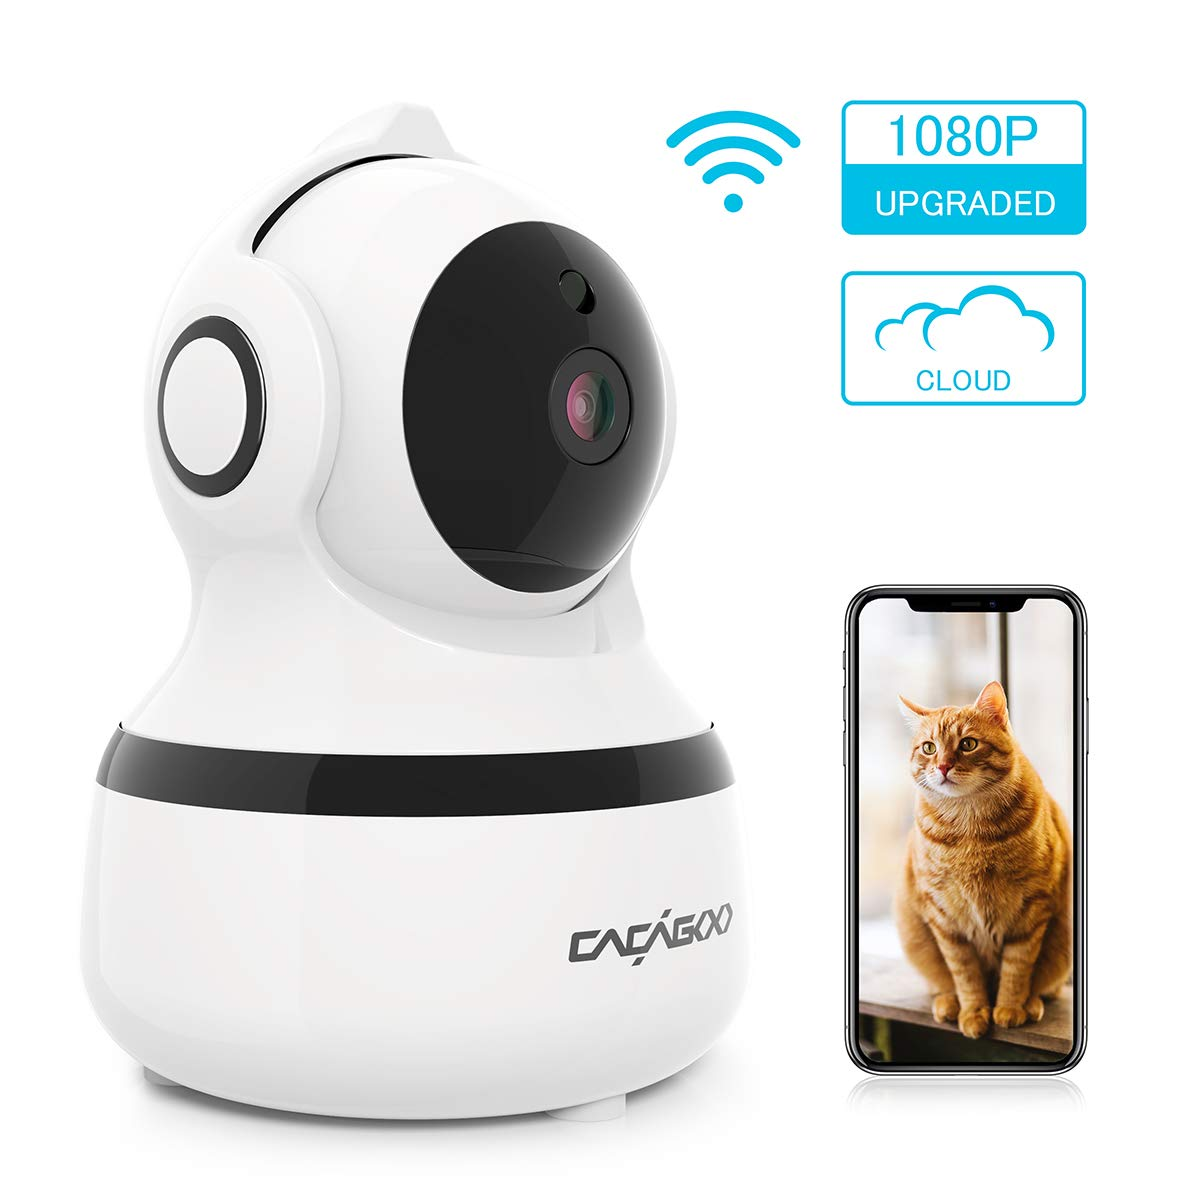 CACAGOO Video Baby Monitor, Security Wifi Camera 1080P Wireless IP Camera Indoor Home Dome Camera with IR Night Vision/Two-Way Audio, Cloud Storage by CACAGOO